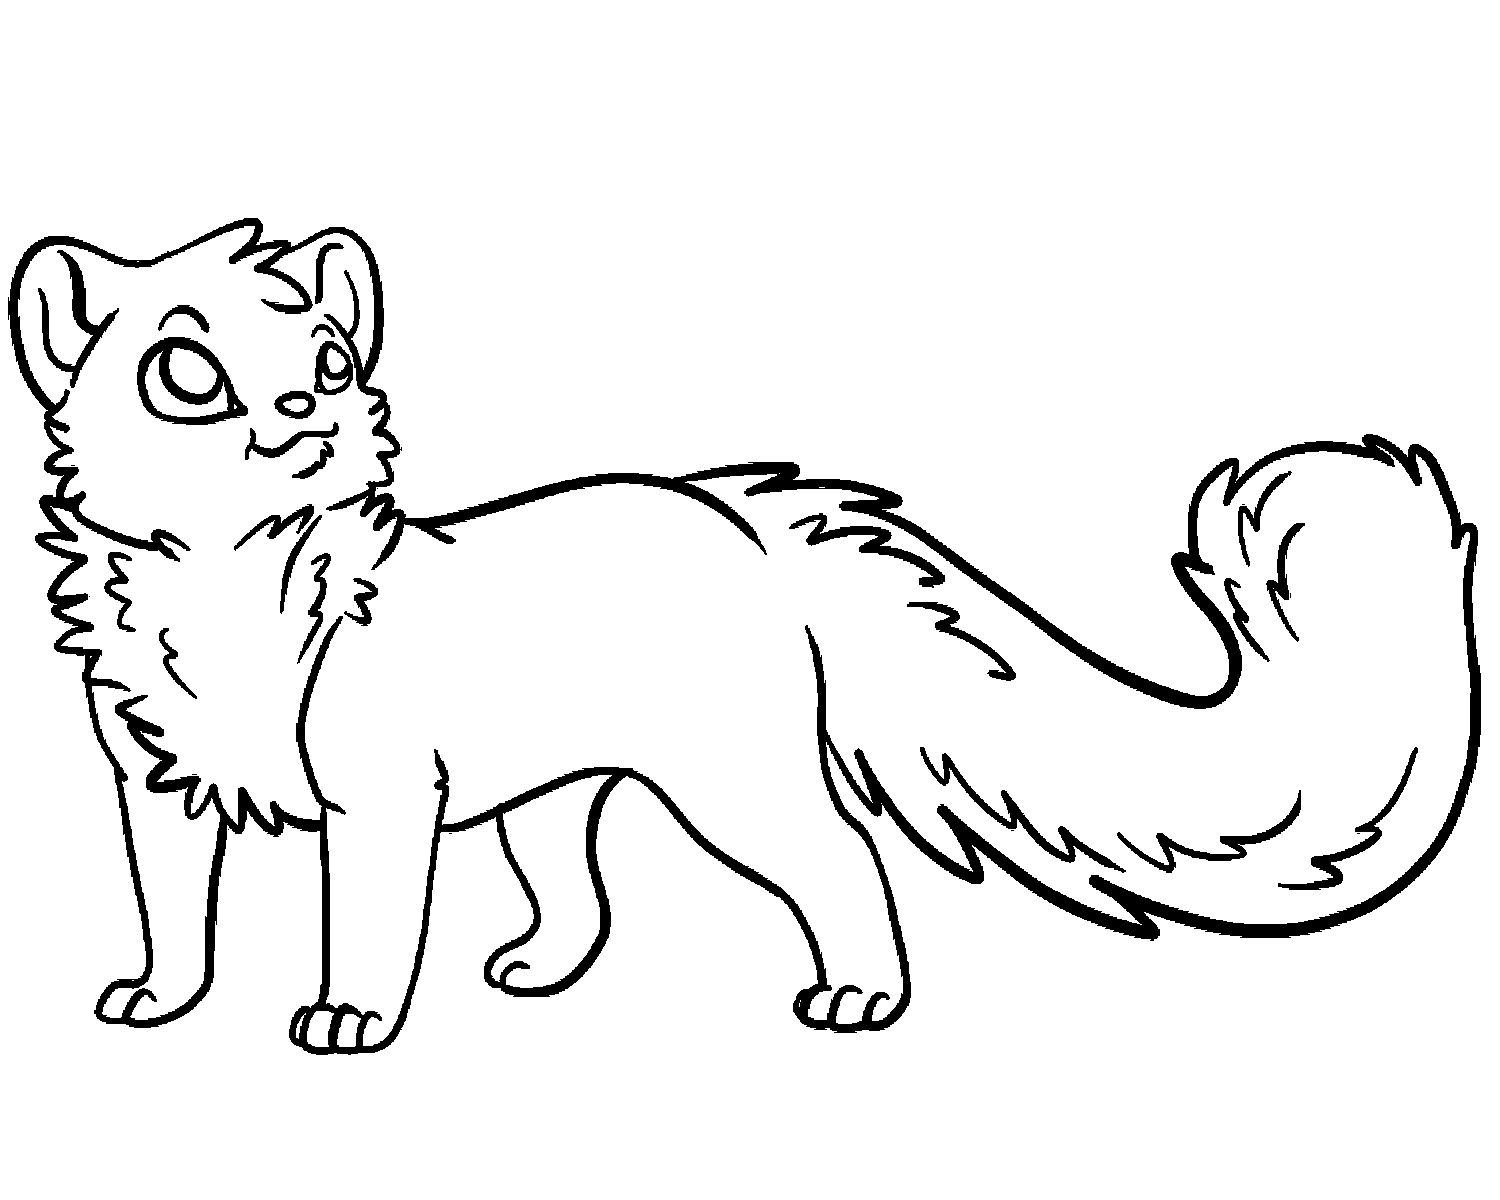 Red Panda Coloring Page Beautiful Cute Red Panda Coloring Pages Clip Art Panda Art